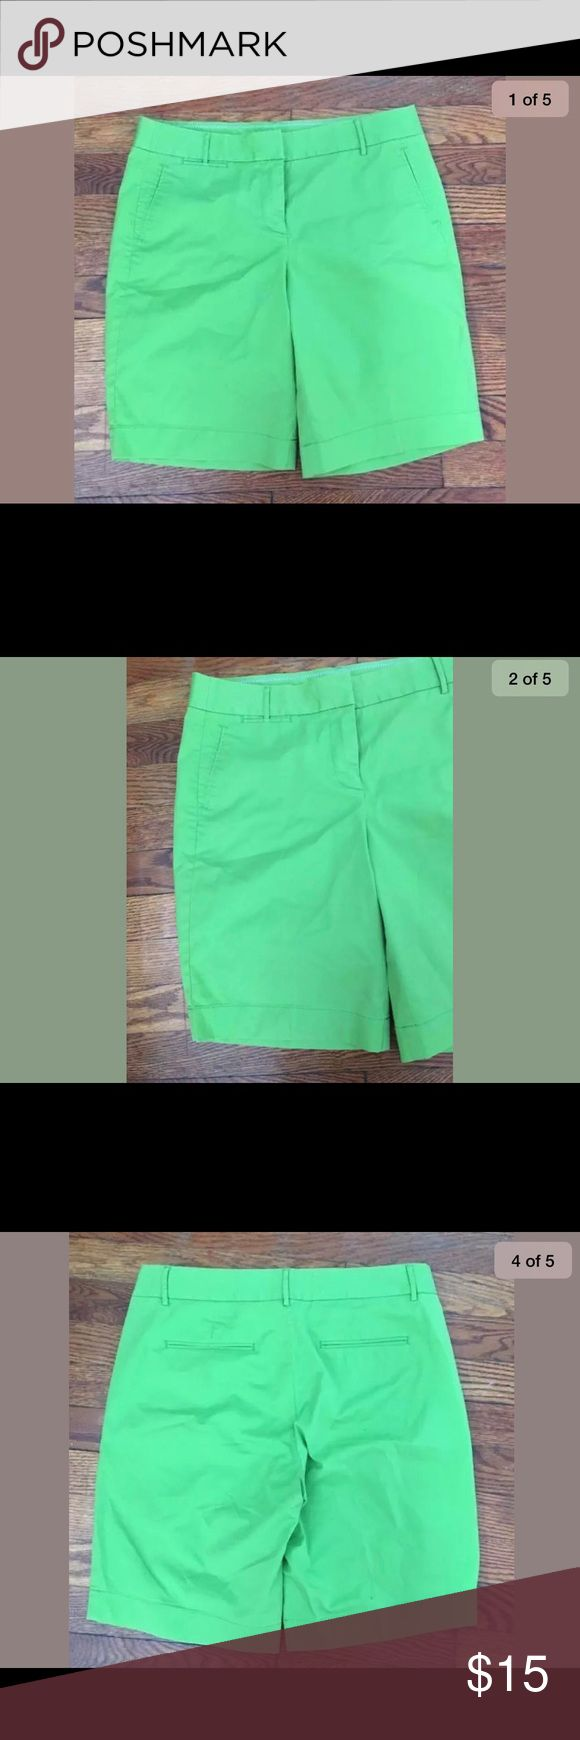 J. Crew Bermuda Shorts Womens Size 4 Green NEW J. Crew Bermuda Shorts Womens Size 4 Green NEW 10 Inch Inseam Summer Spring  Cotton/spandex blend. Front and back pockets with belt loops.  10 inch inseam.  Smoke and pets free home J. Crew Shorts Bermudas